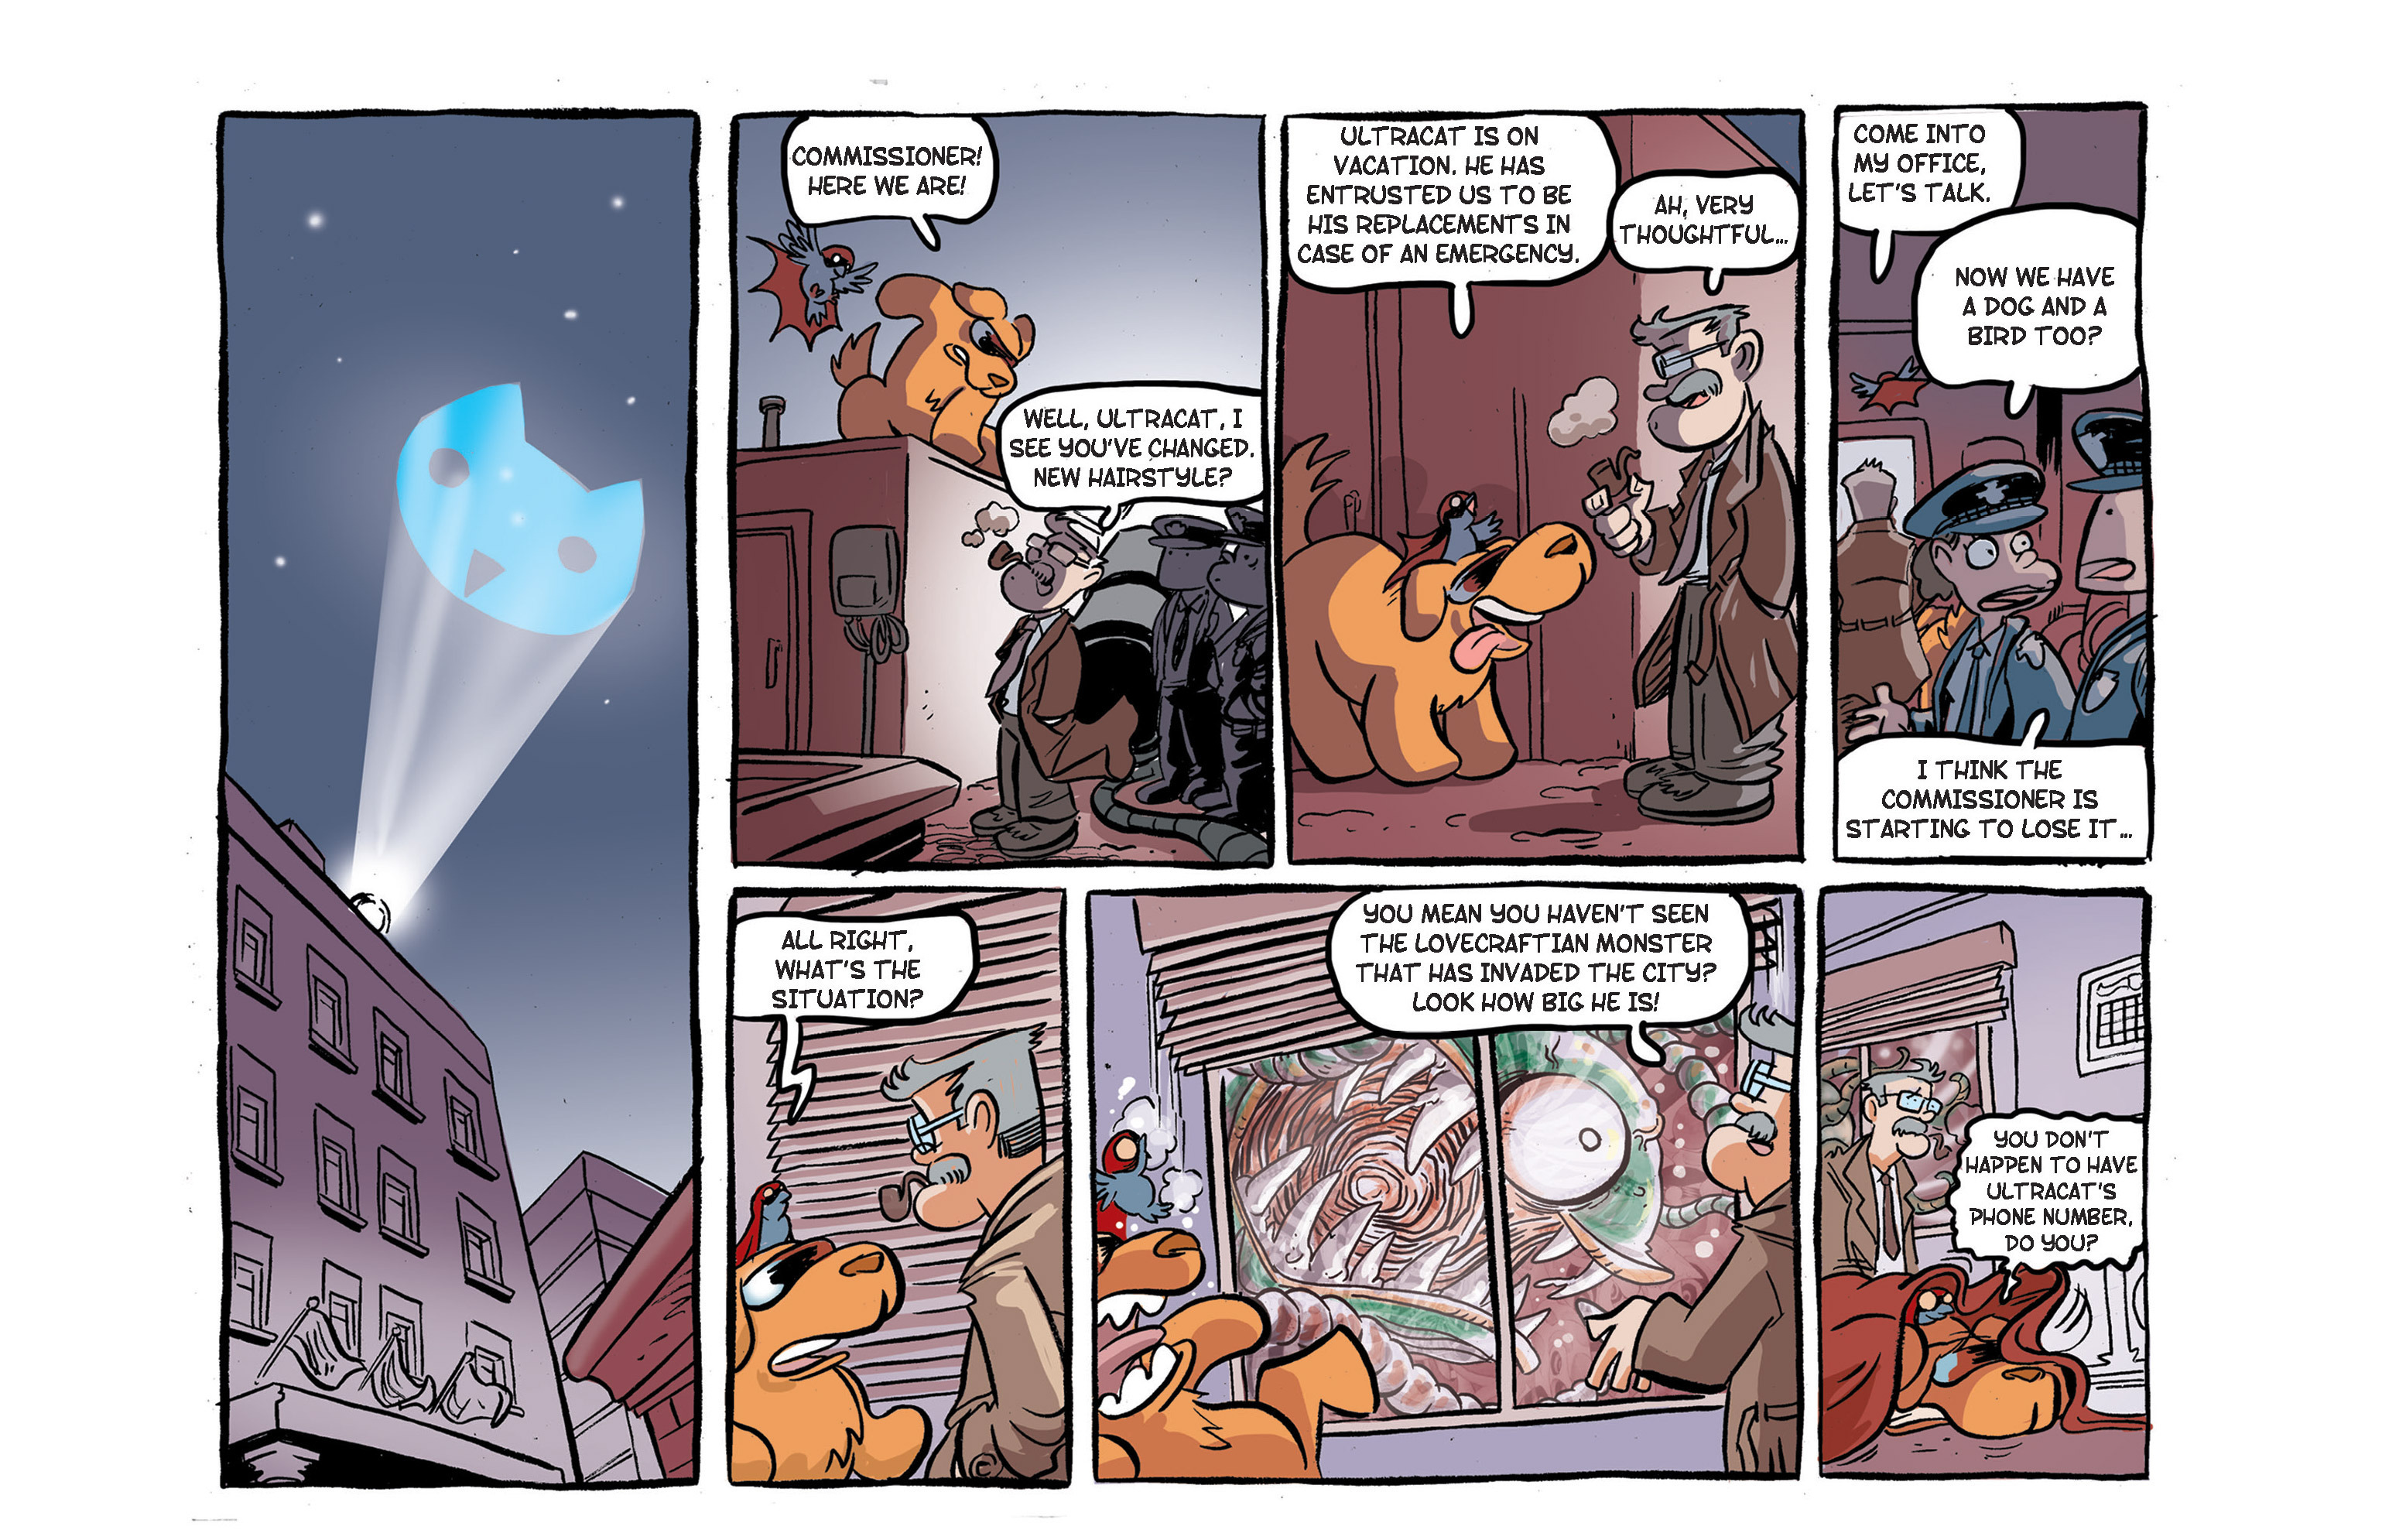 Read online Ultracat comic -  Issue #4 - 19